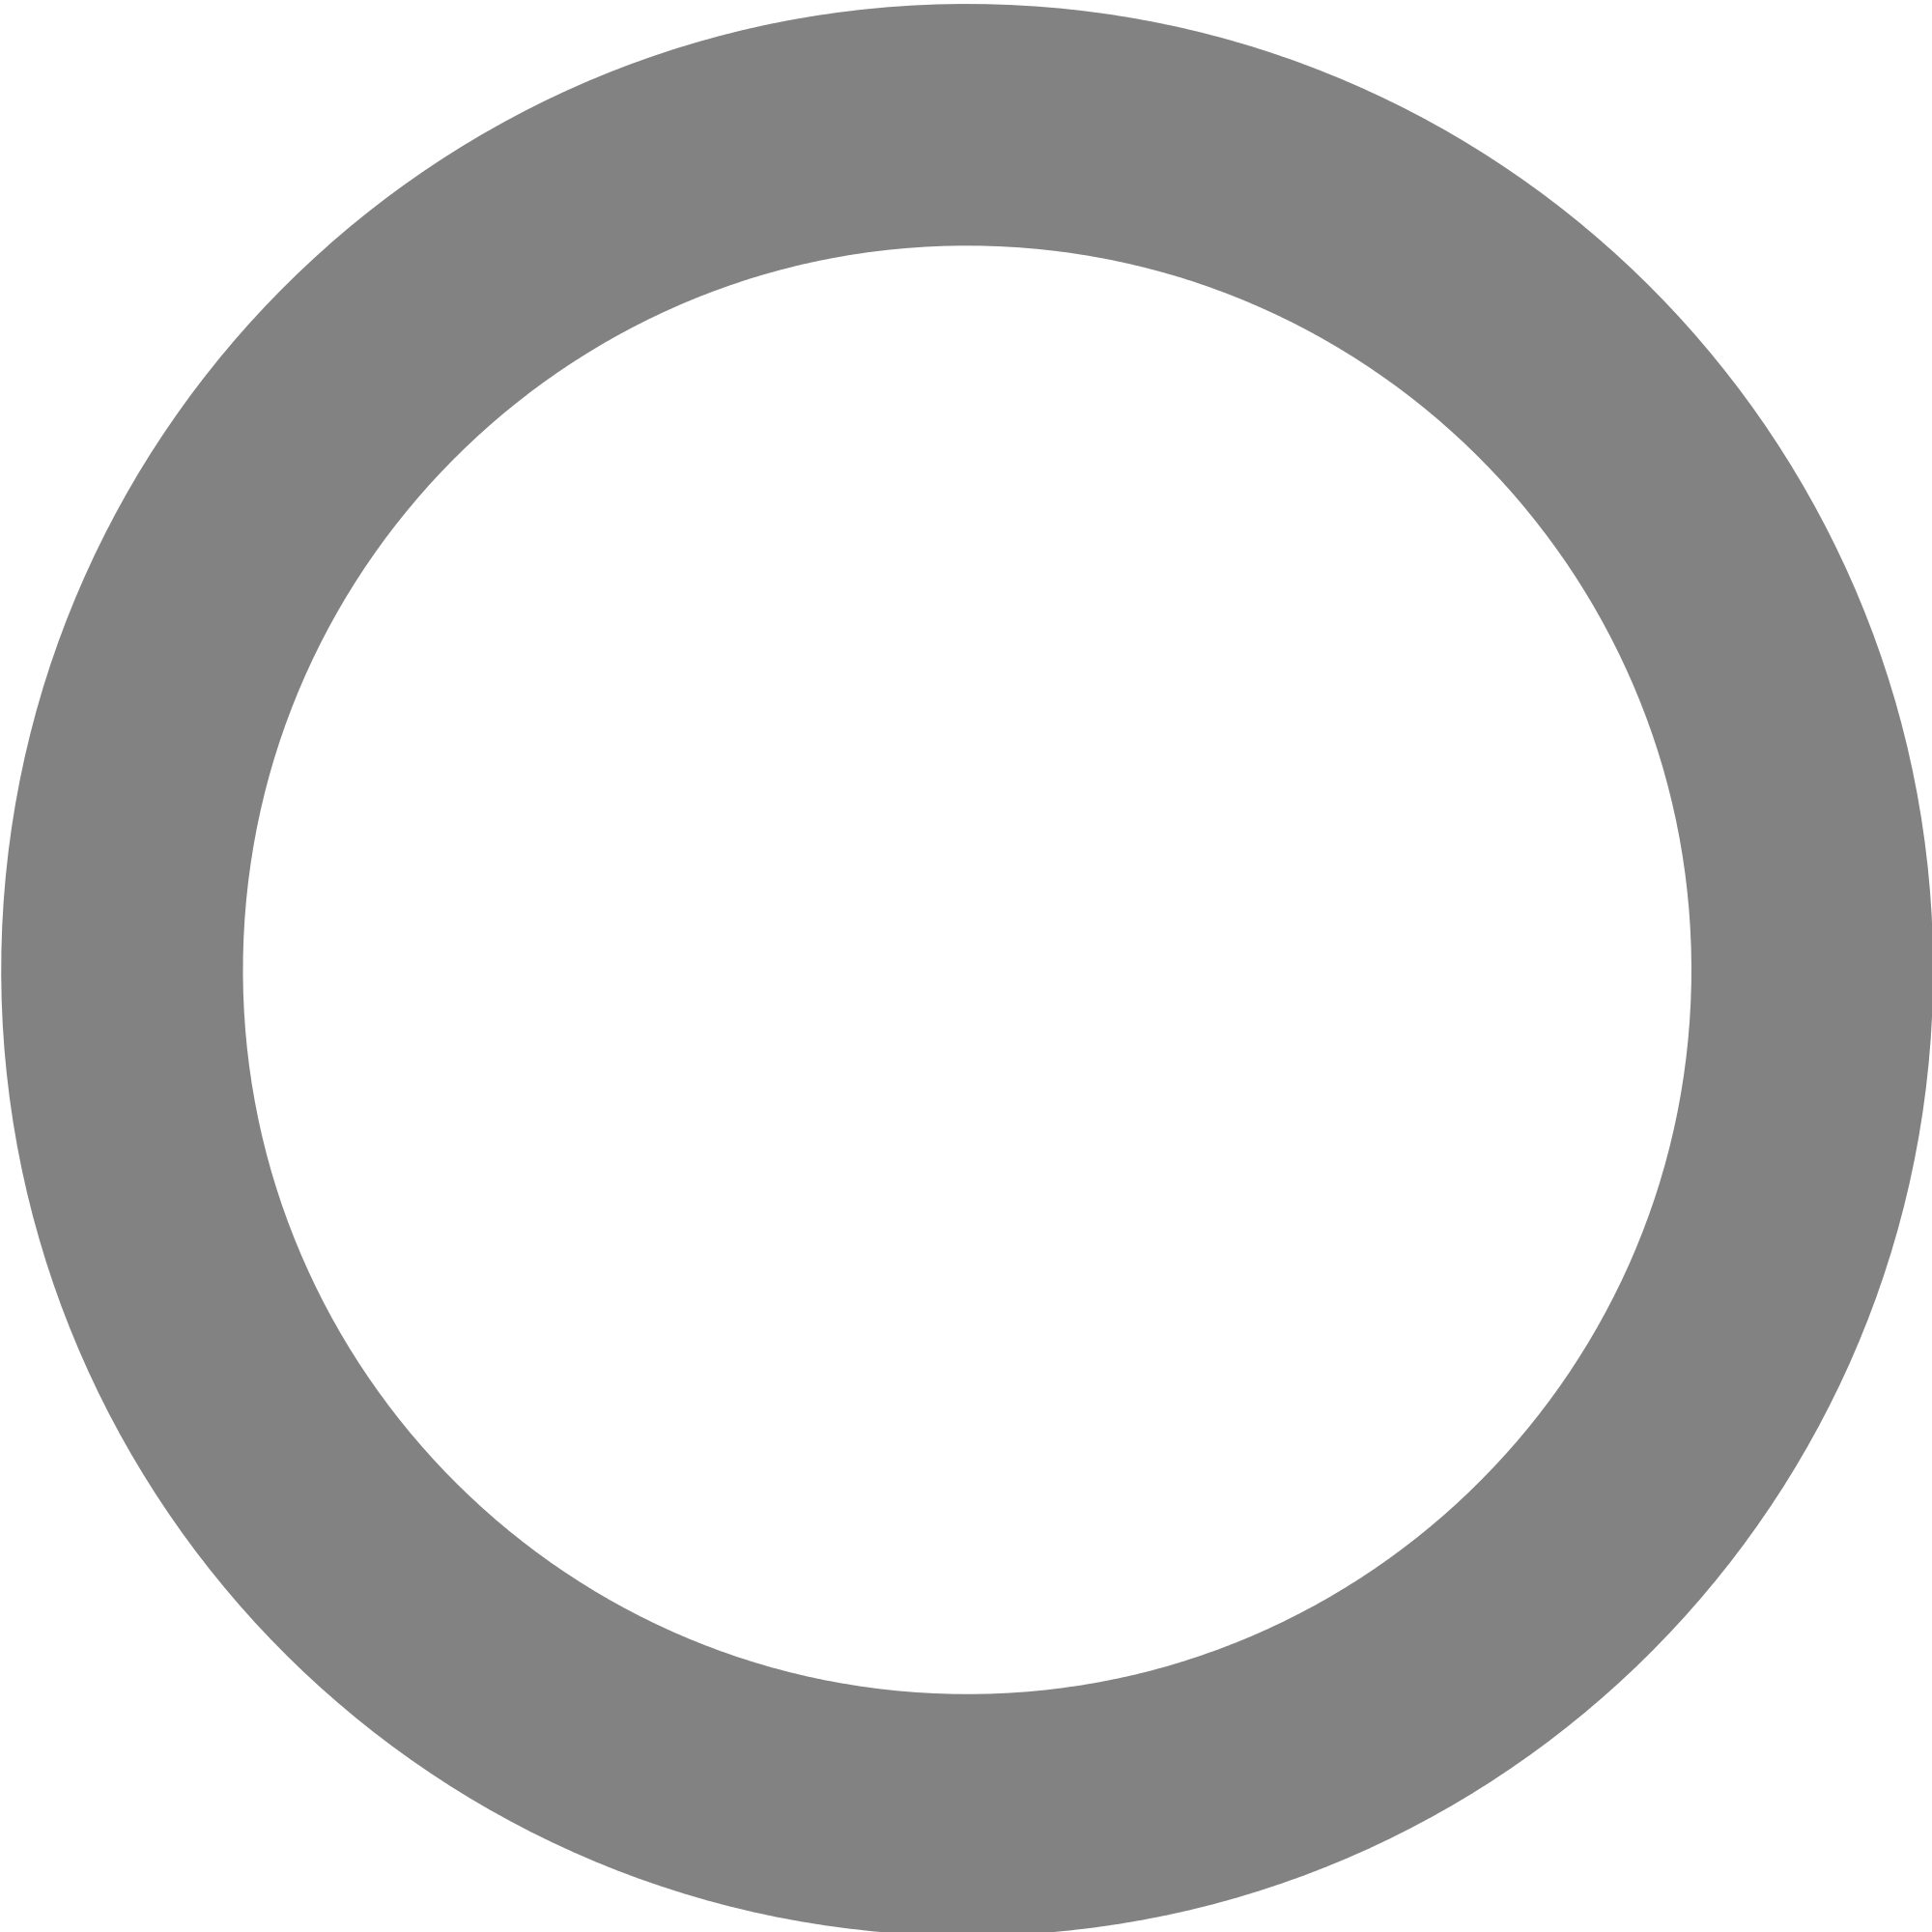 Gray circle png. File small dark grey